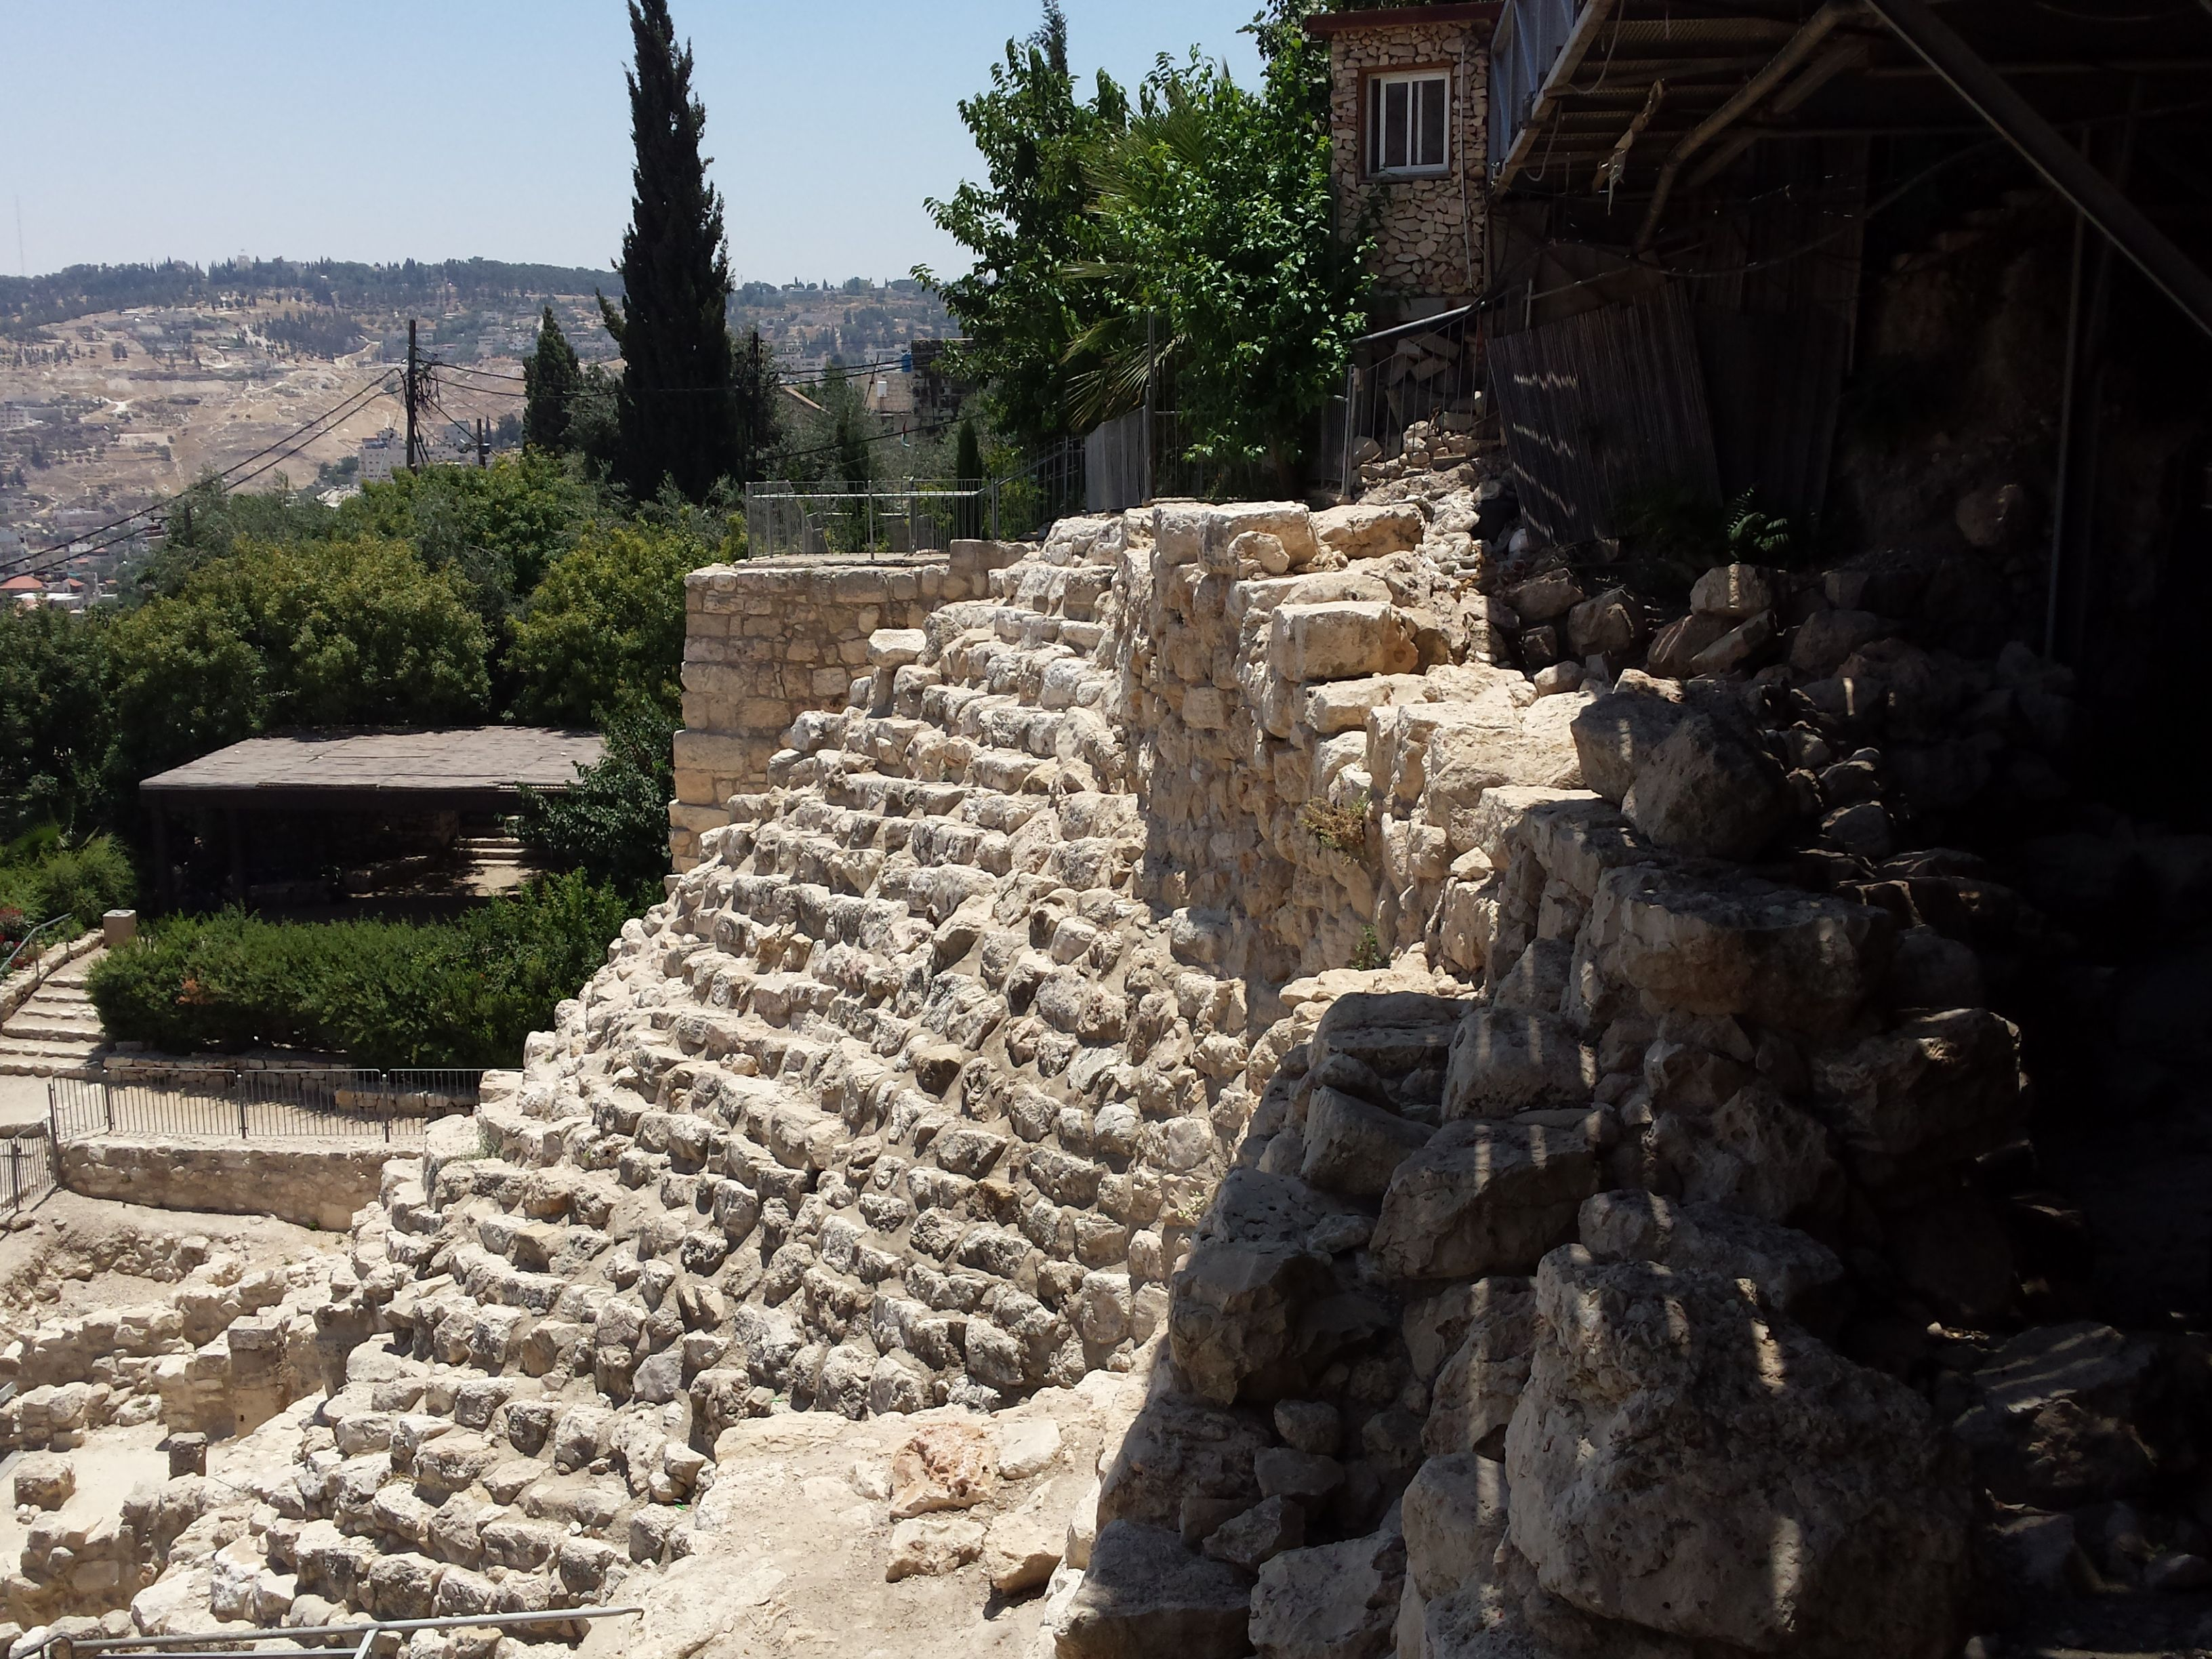 At the City of David in Jerusalem, Israel has uncovered the ruins of the impressive Canaanite fortress that once protected the city and guarded the precious Gihon Spring.